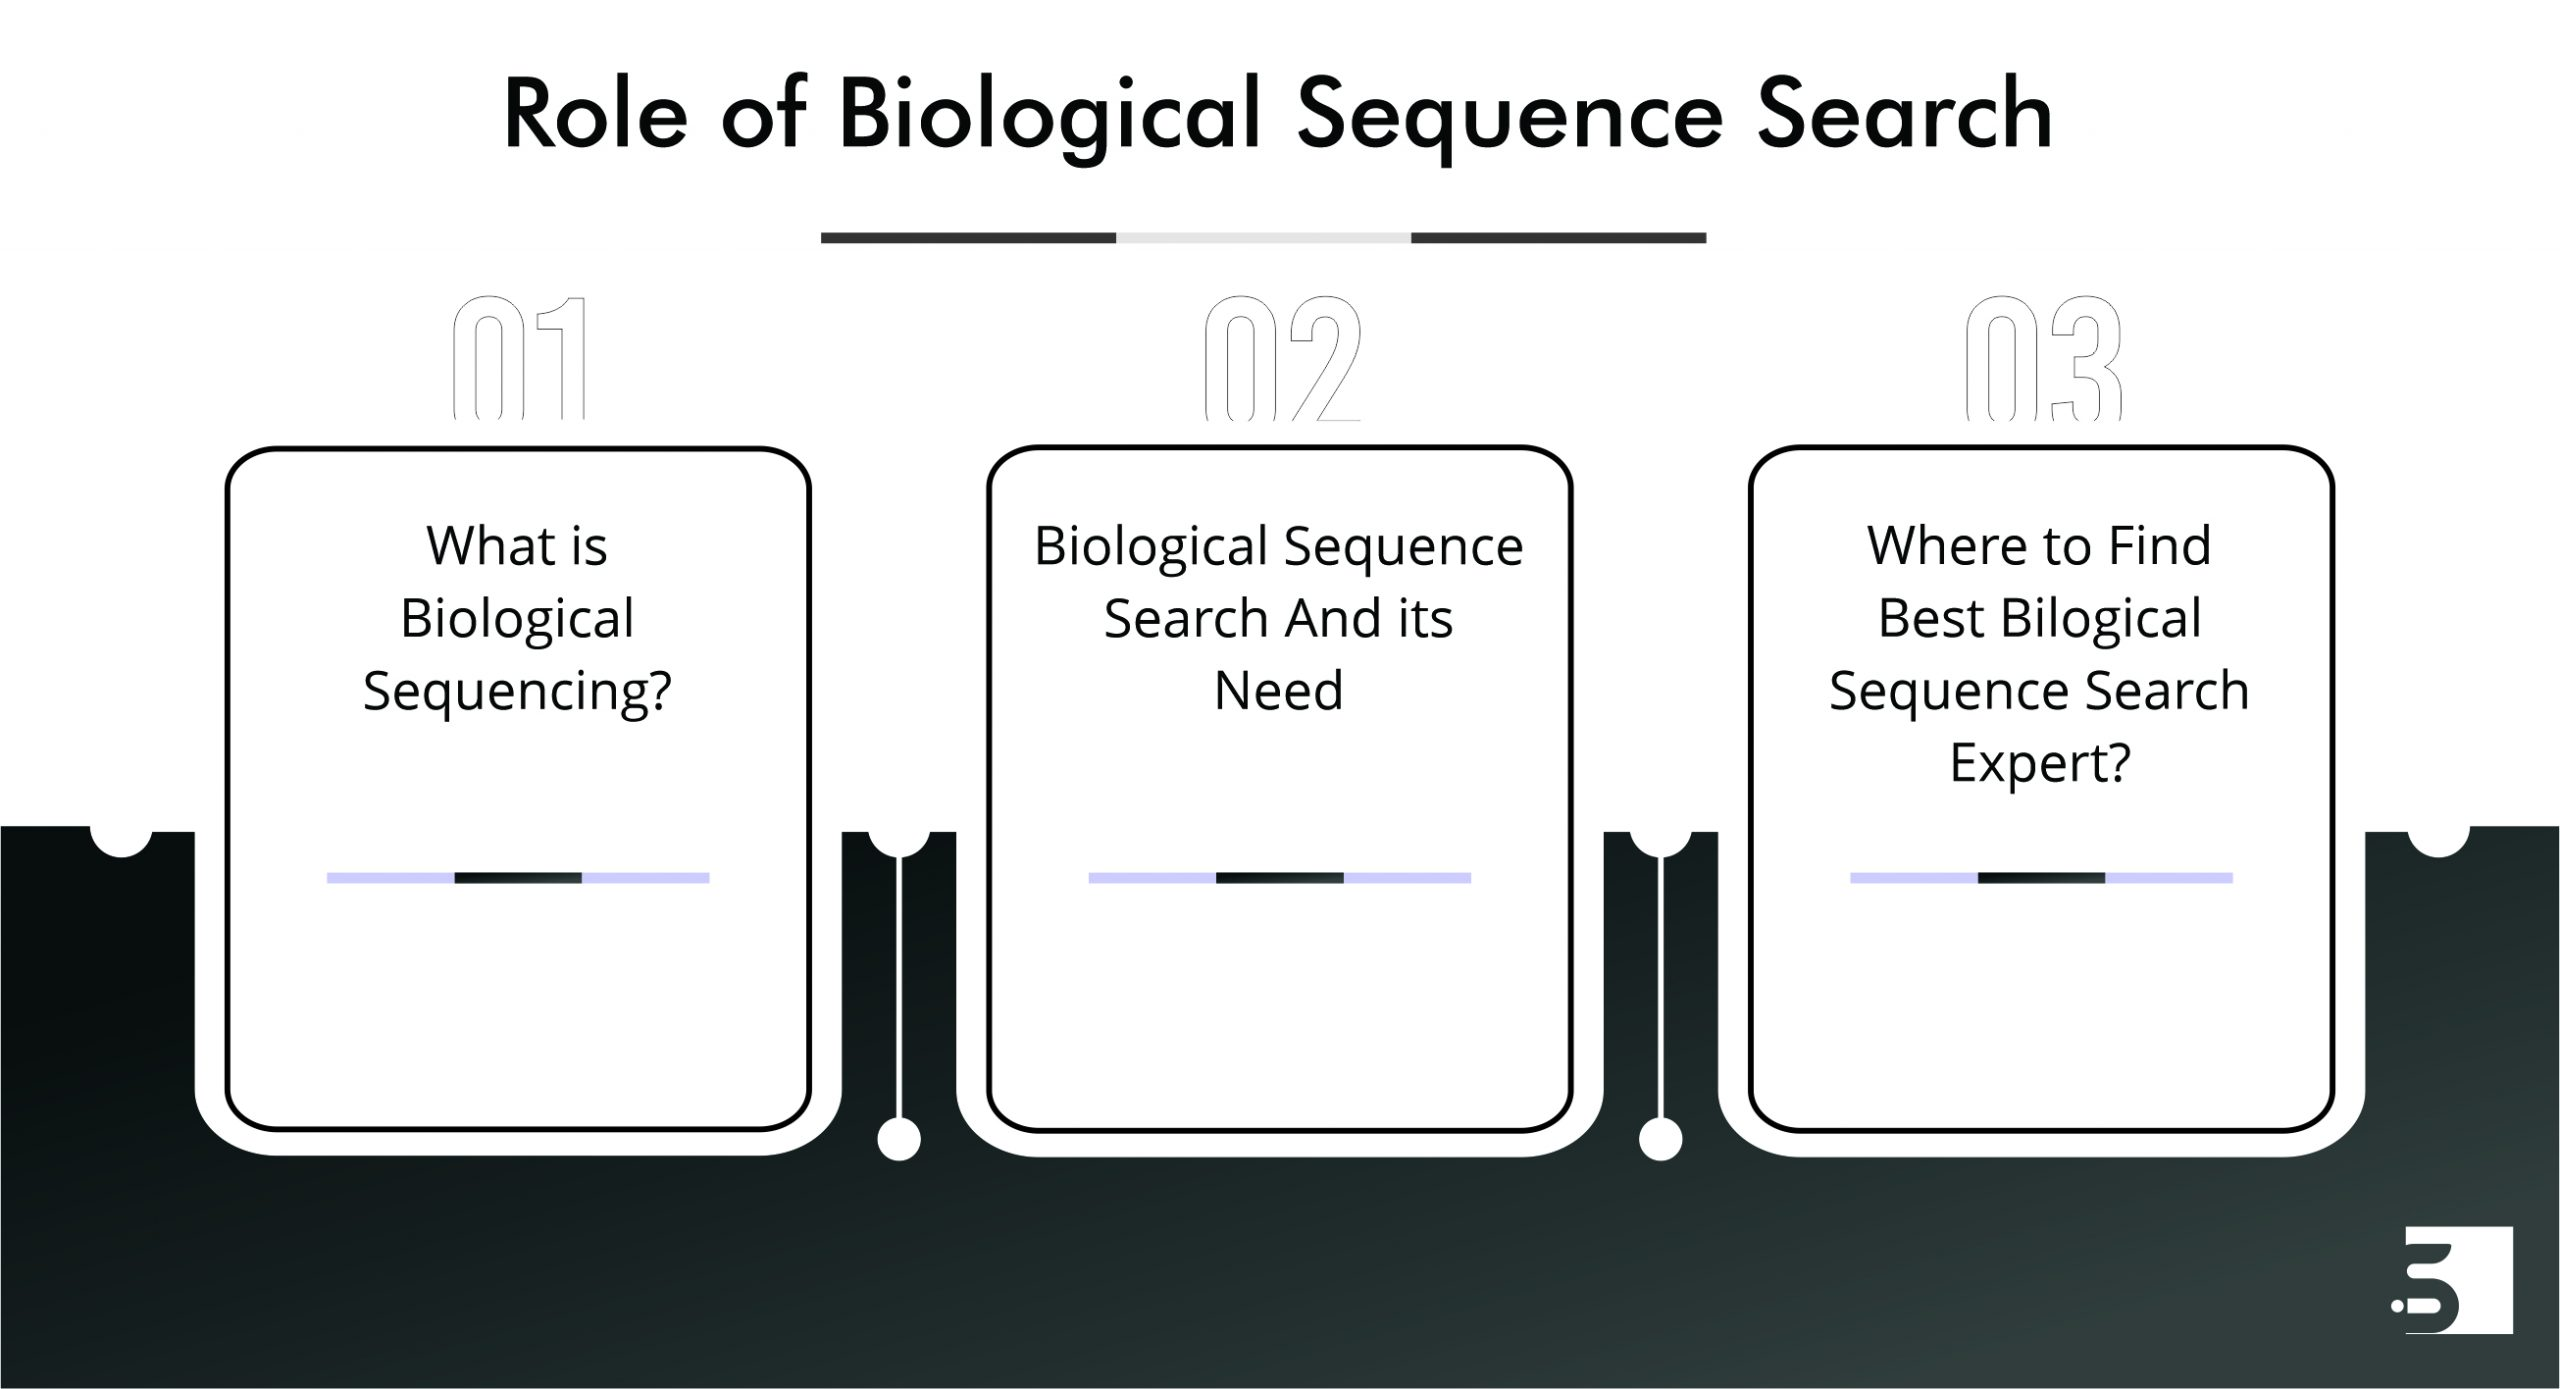 Role of biological sequence search